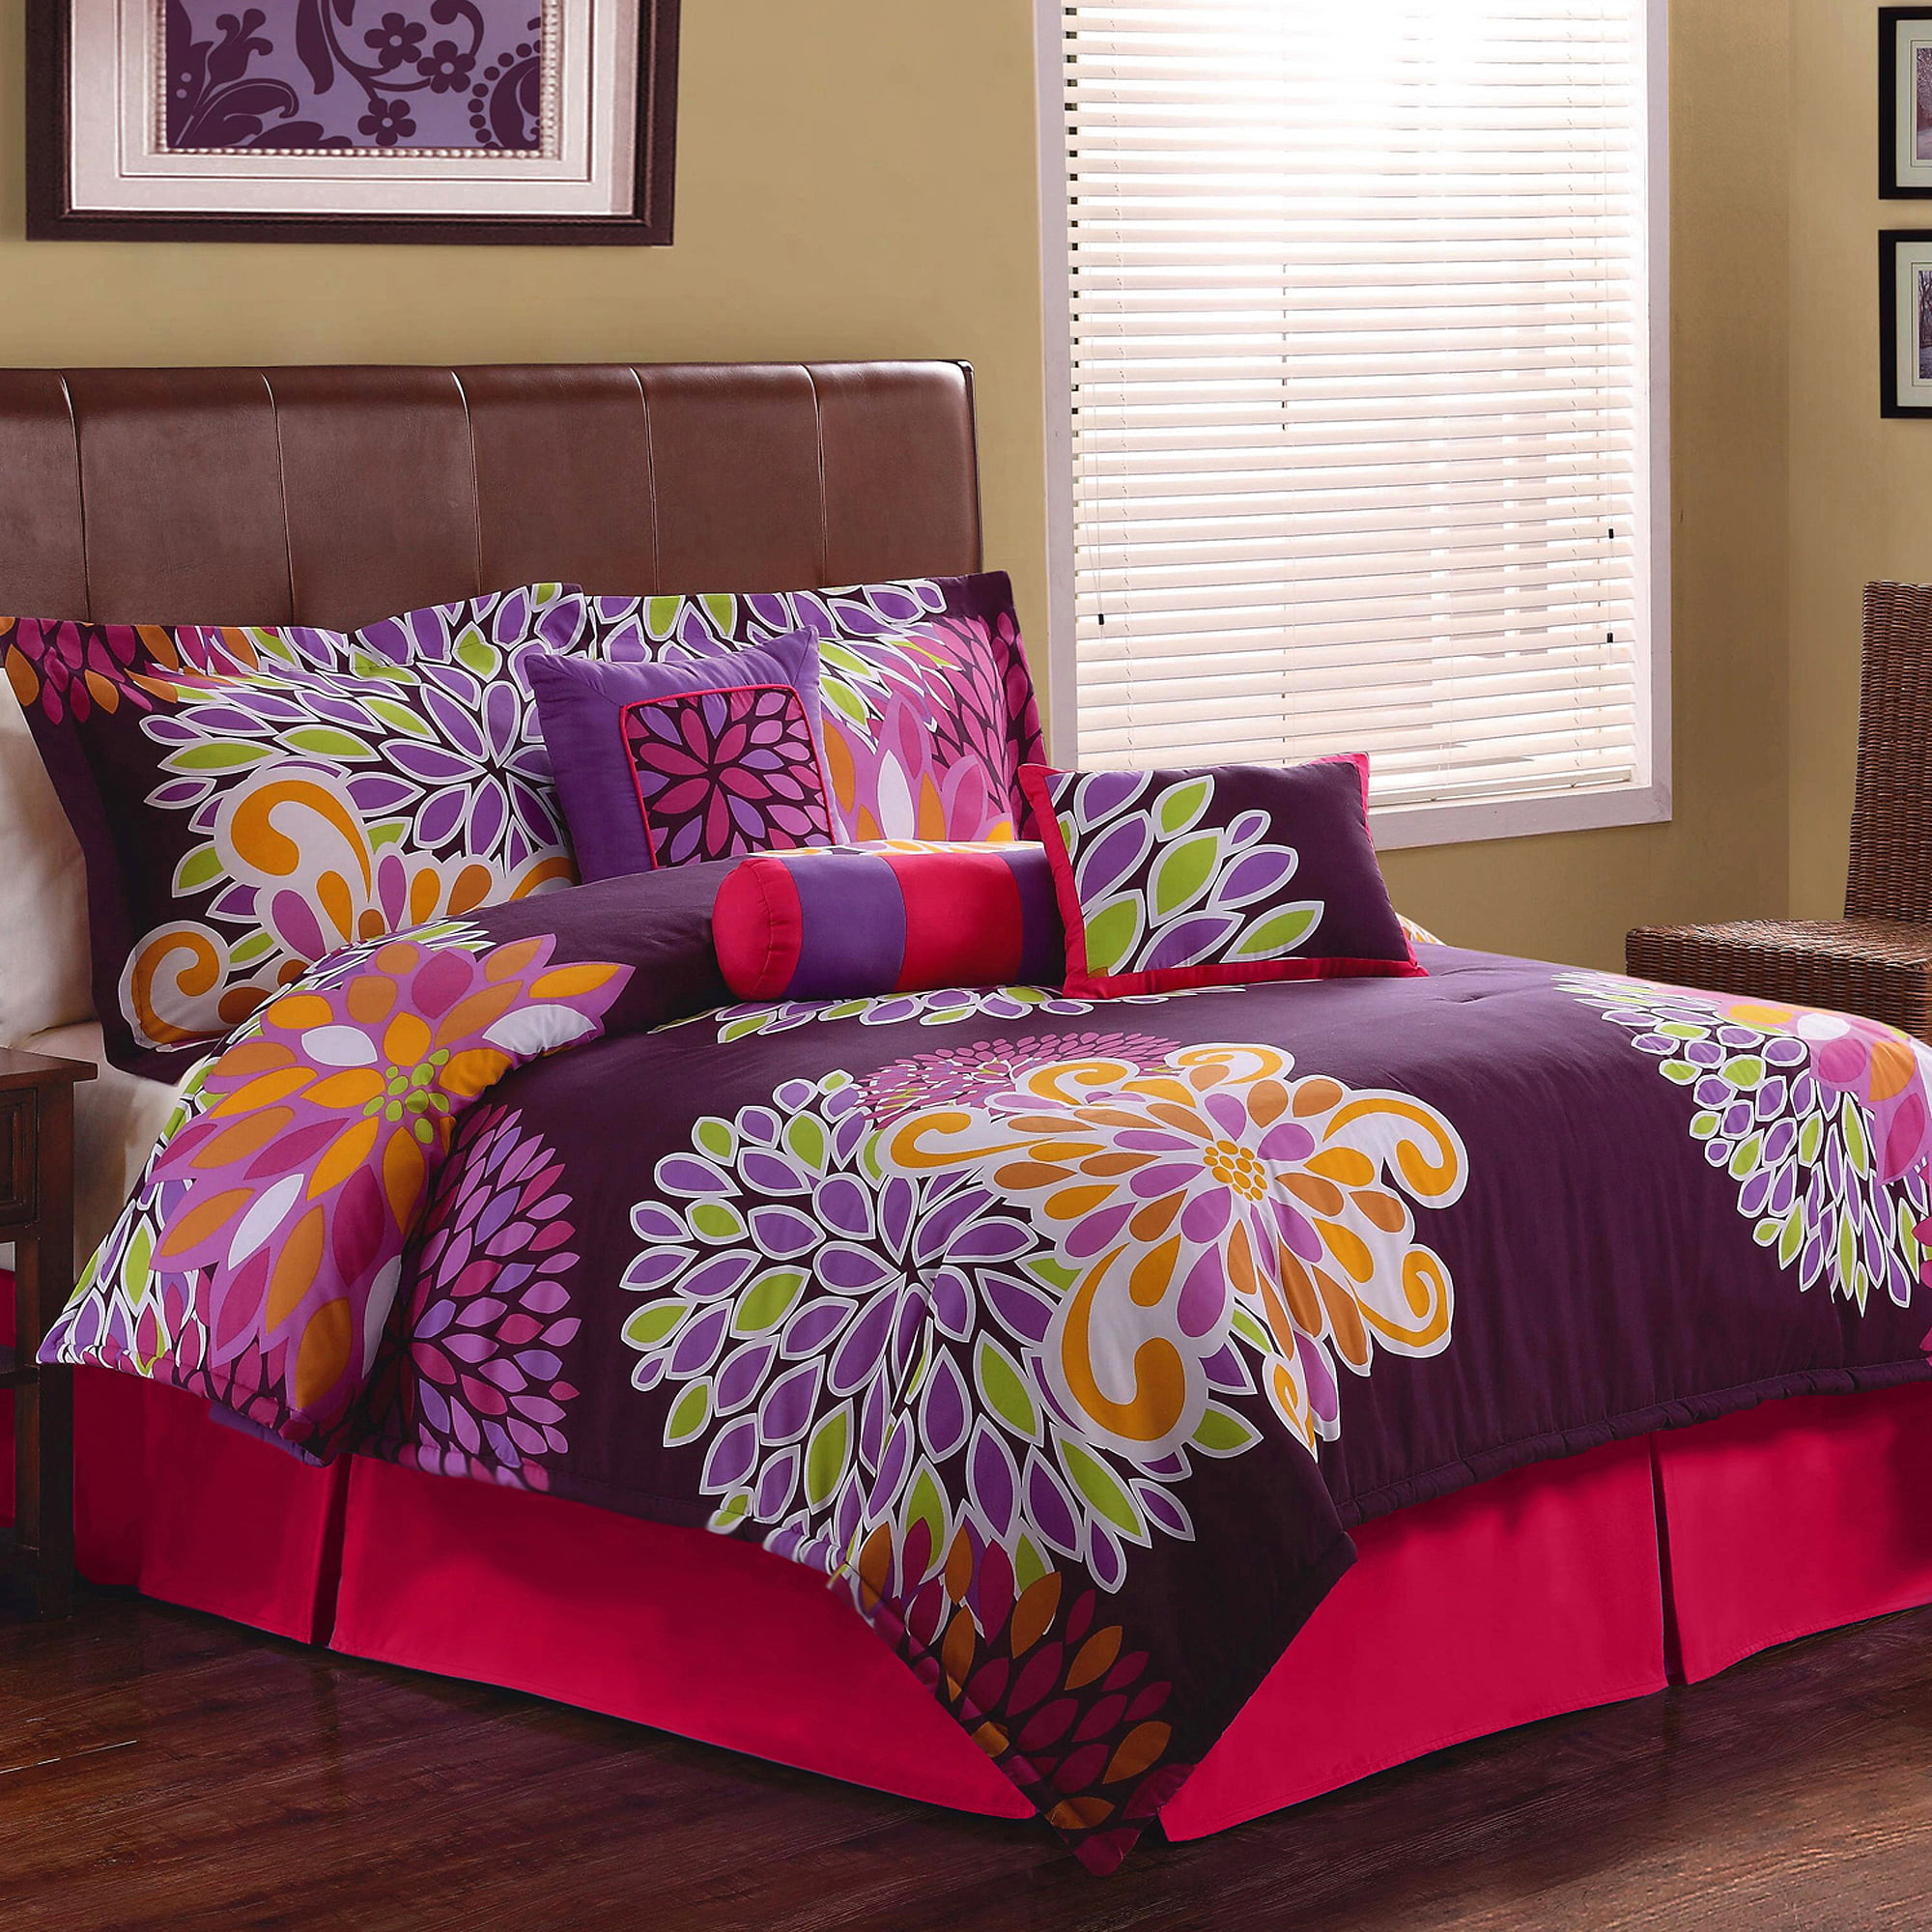 Purple bedding for teenage girls - Purple Bedding For Teenage Girls 25